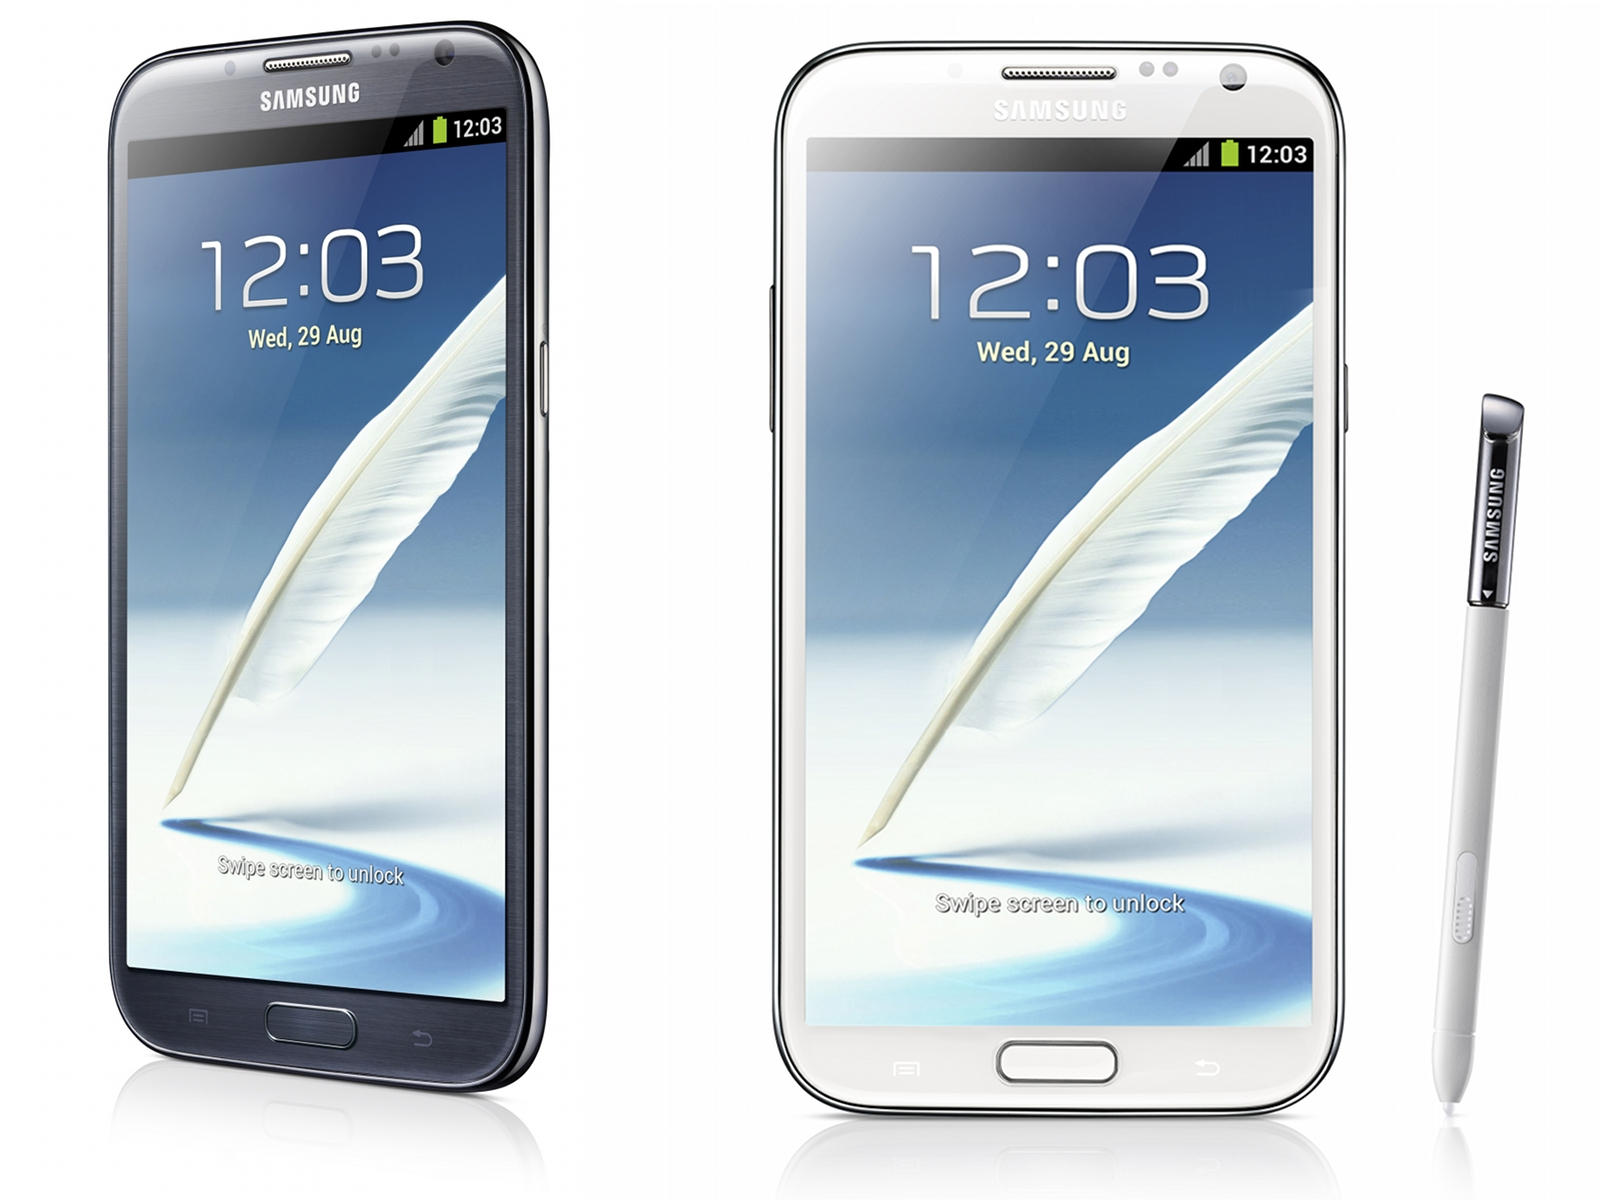 Galaxy Note ii screen repair Los Angeles Samsung Galaxy S Screen Replacement   Samsung S1/S2/S3/S4 Screen Repair LOS ANGELES